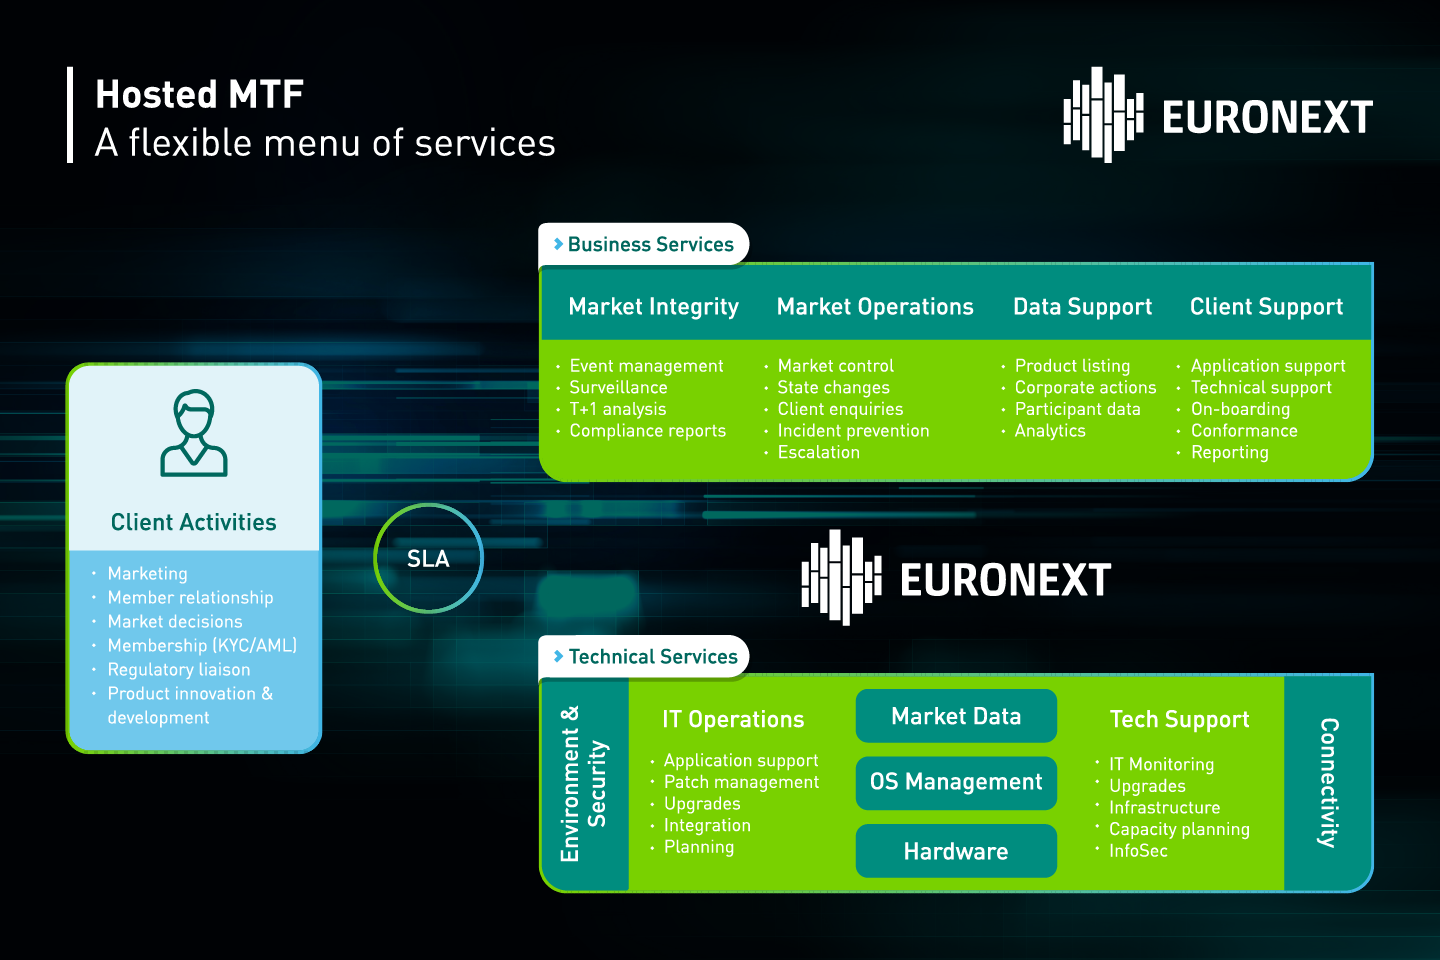 Euronext's hosted MTF service